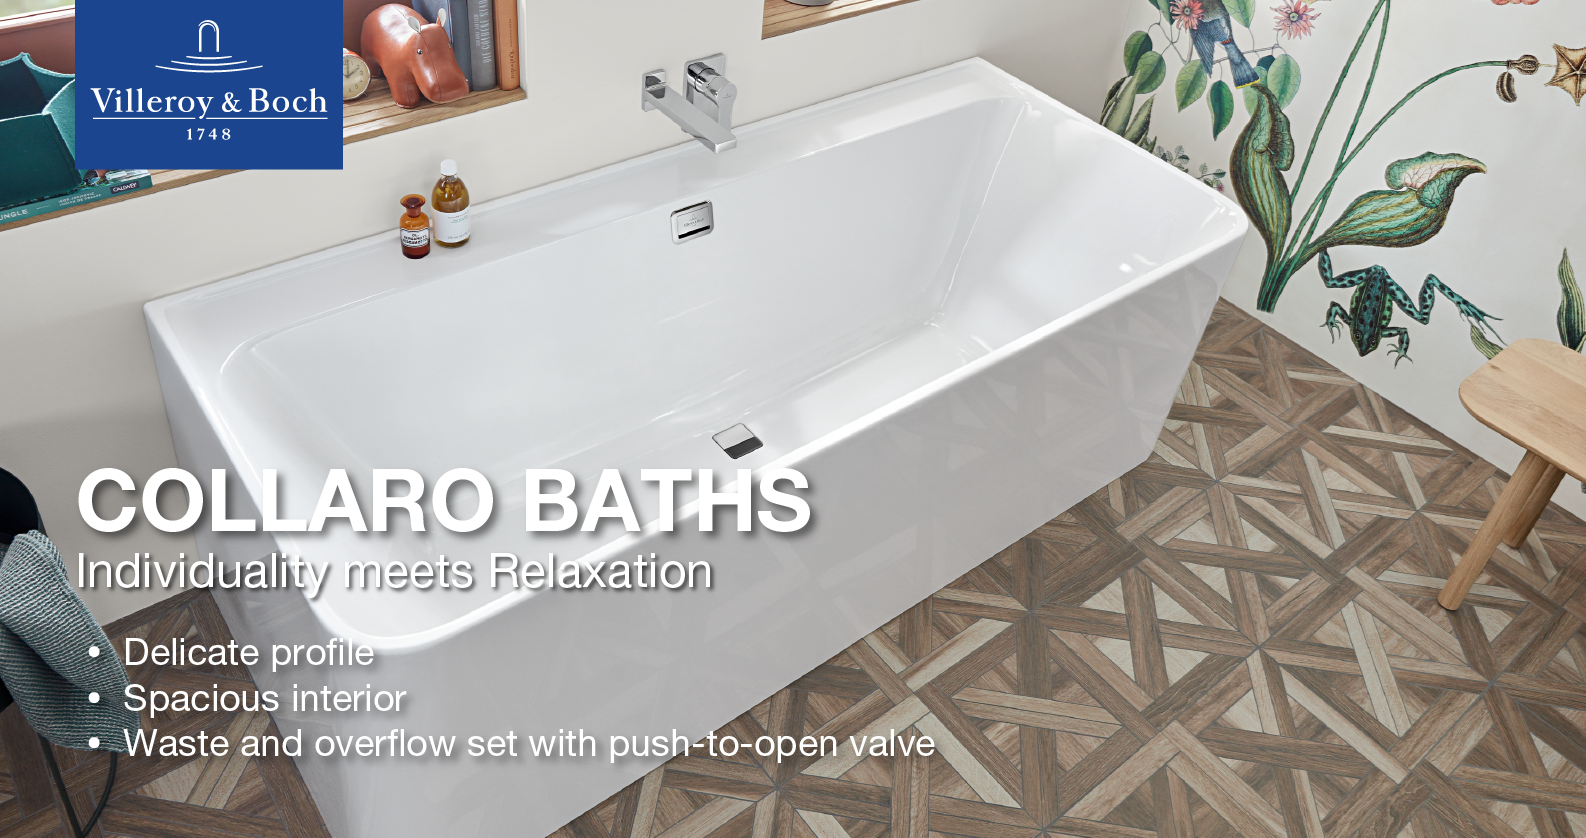 Villeroy & Boch Collaror Bathtubs